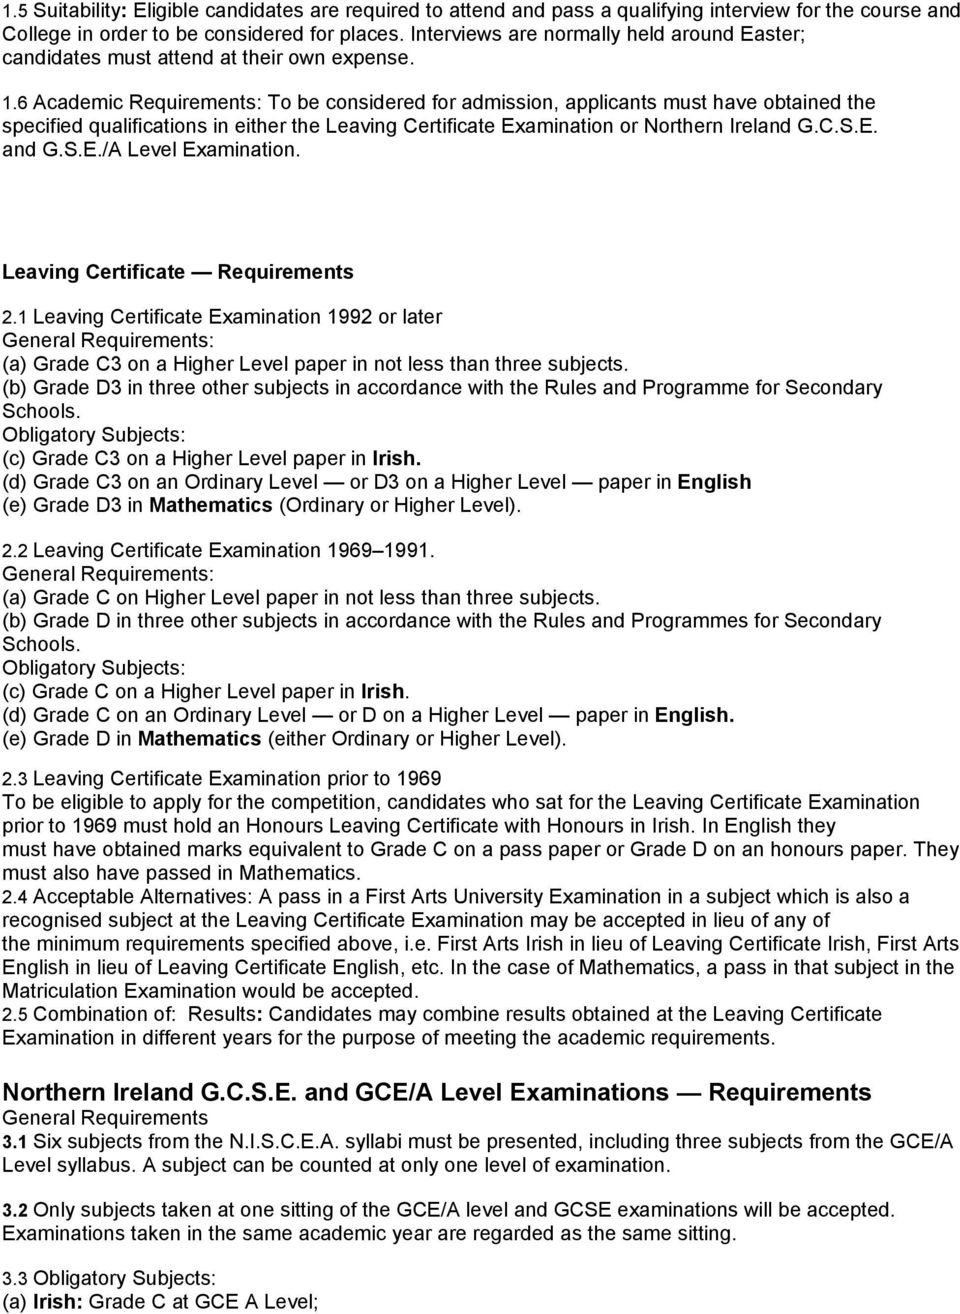 6 Academic Requirements: To be considered for admission, applicants must have obtained the specified qualifications in either the Leaving Certificate Examination or Northern Ireland G.C.S.E. and G.S.E./A Level Examination.